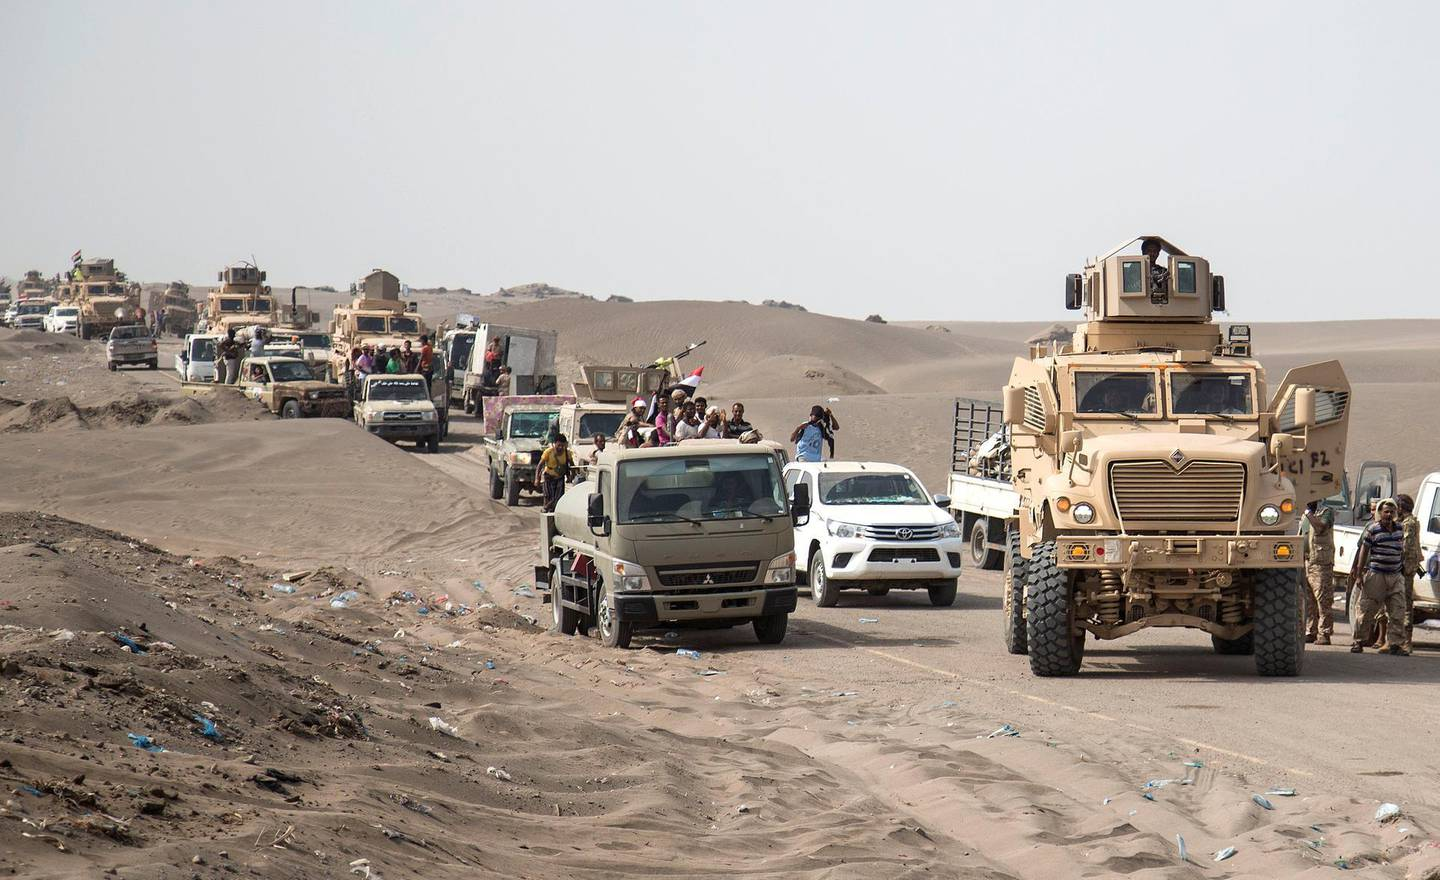 Military vehicles and forces from Tarik Salih' brigade   with some forces from Tehama Brigade, advance in  Hudayda along the west coast. May 29, 2018.  Photo/ Asmaa Waguih